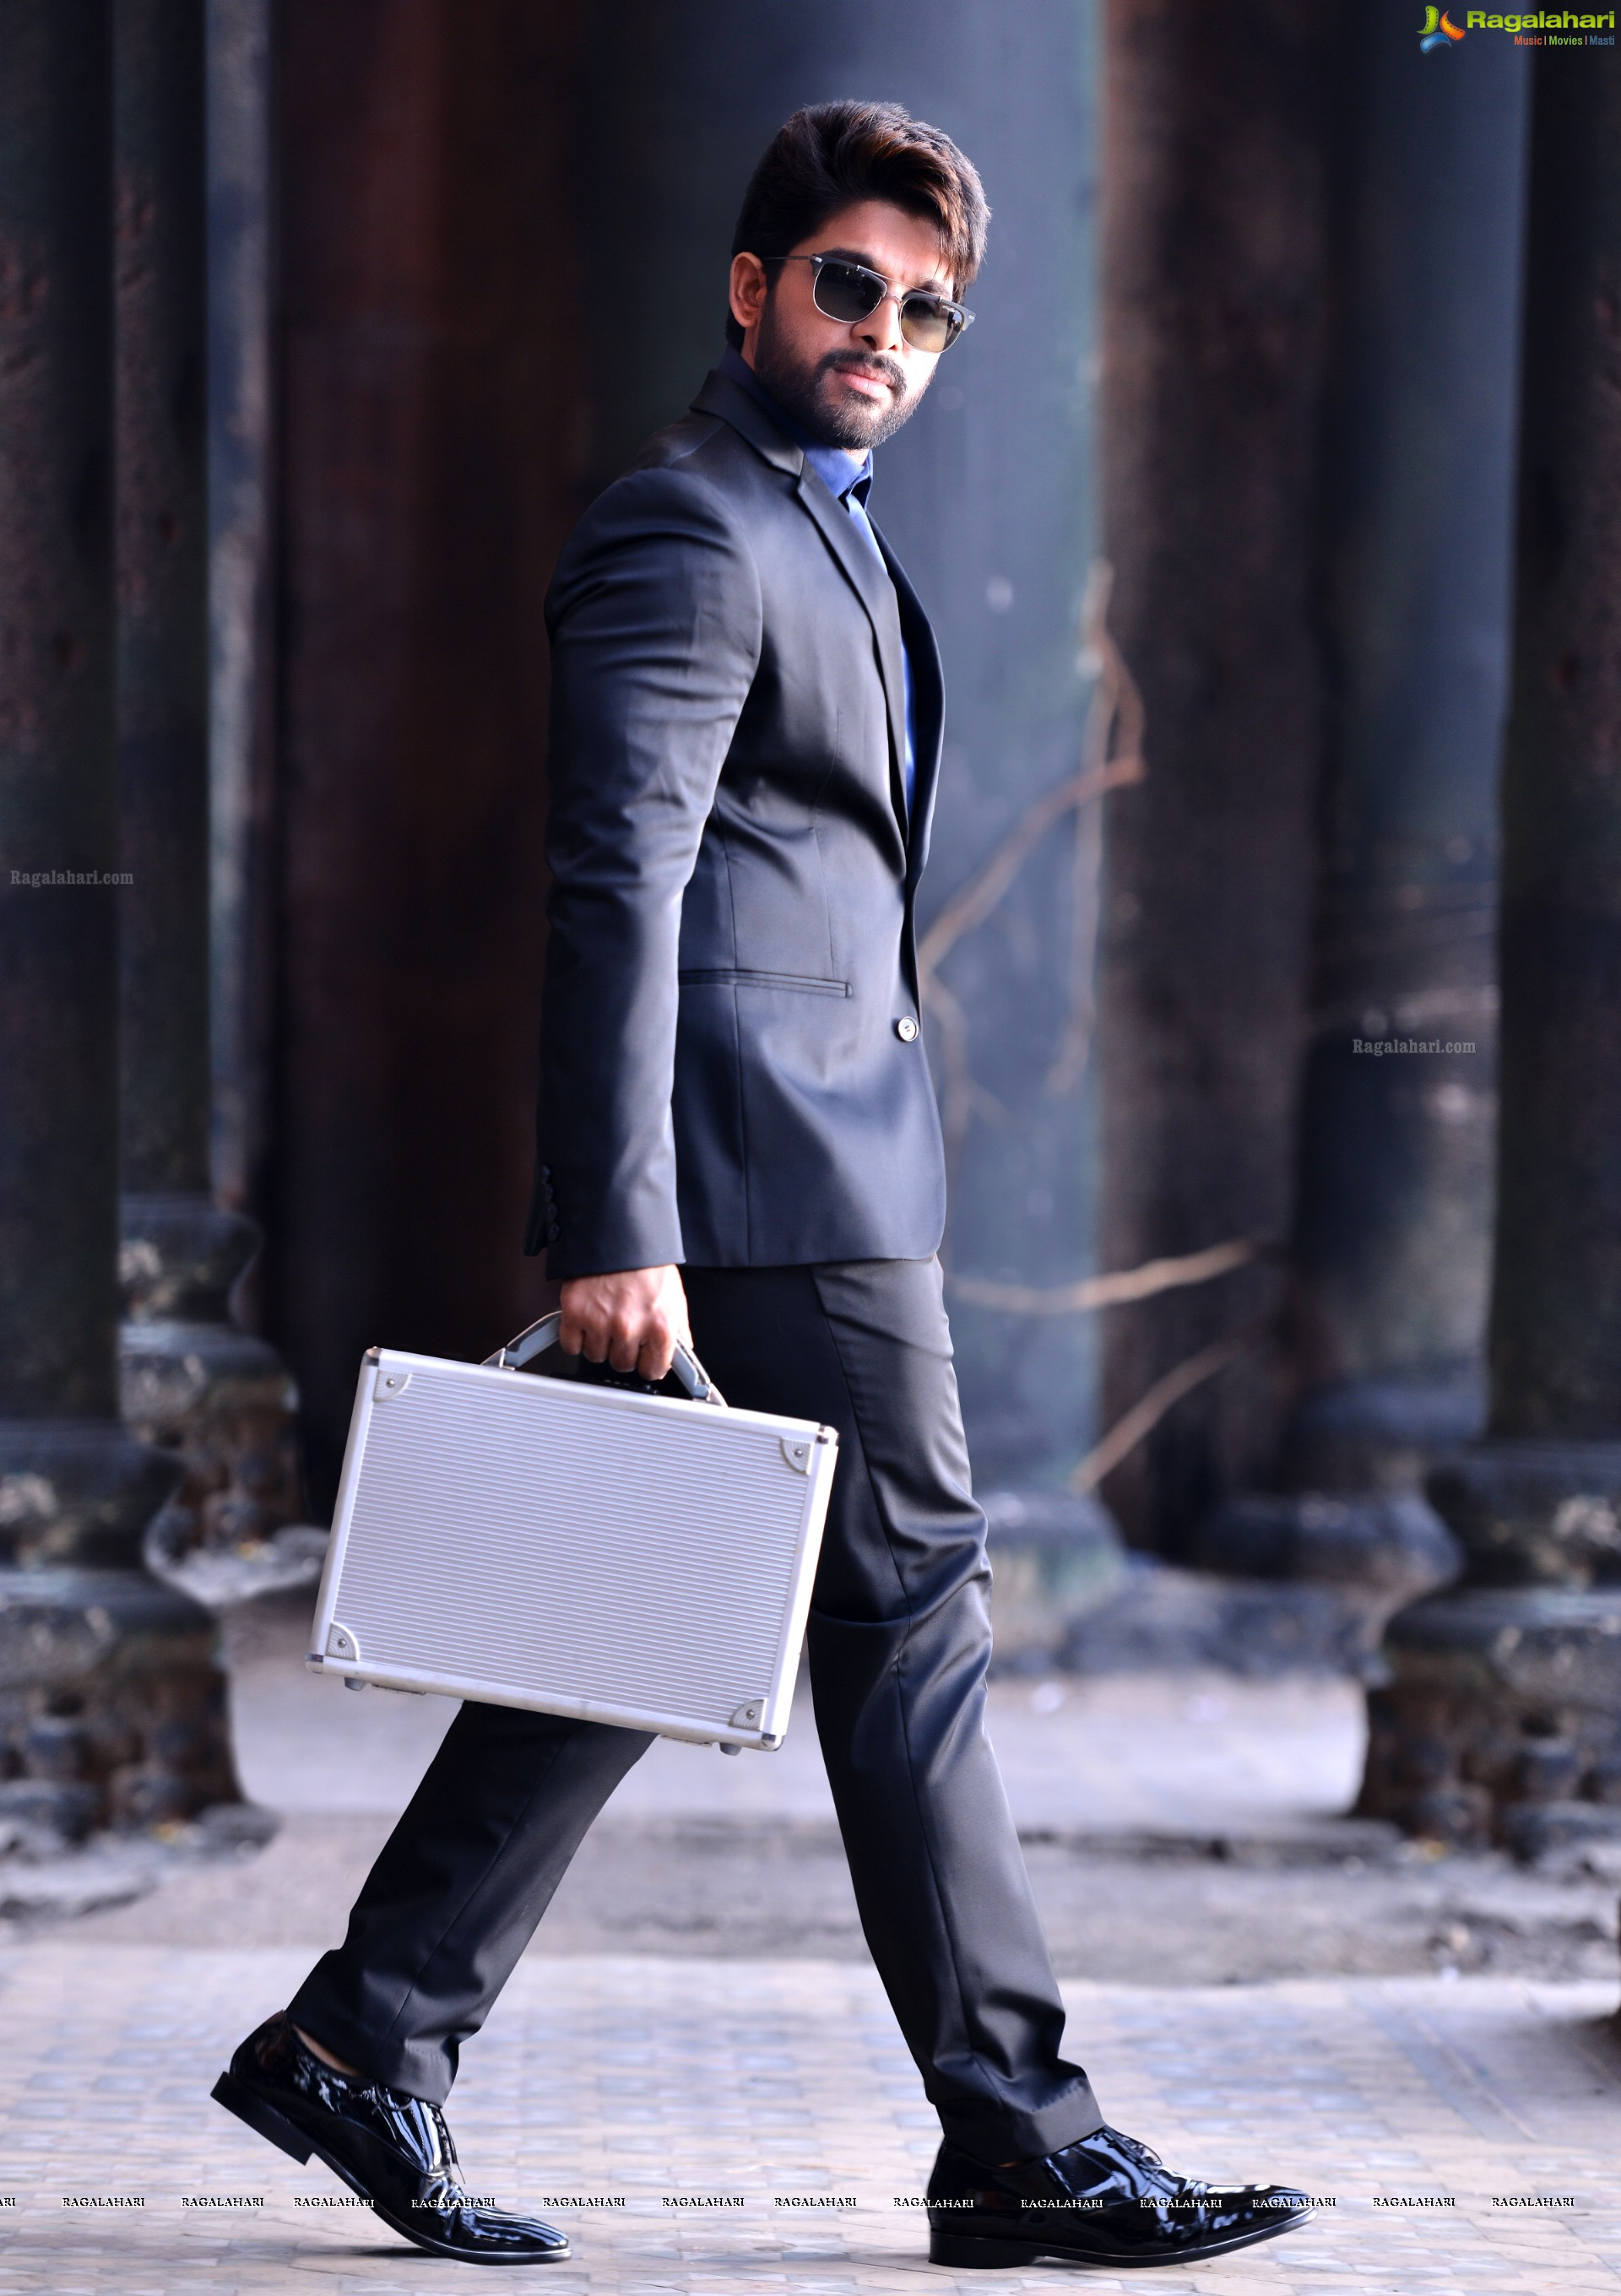 allu arjun (hd) image 1000 | telugu cinema hero photos gallery